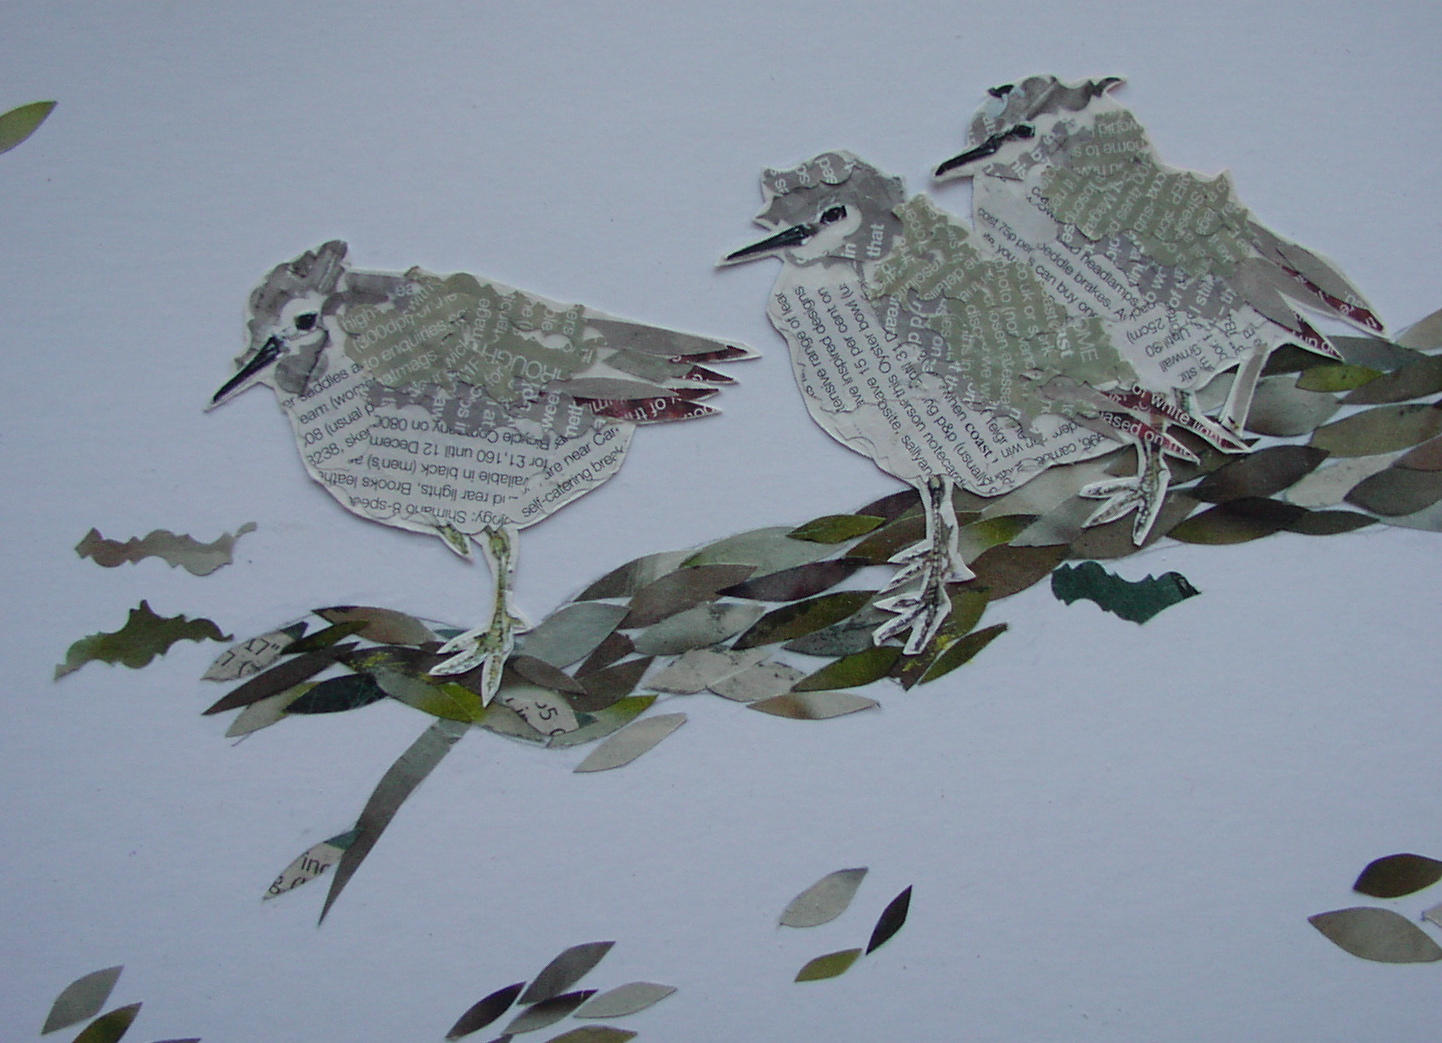 Sculpted paper birds cr Carolyn Stubbs